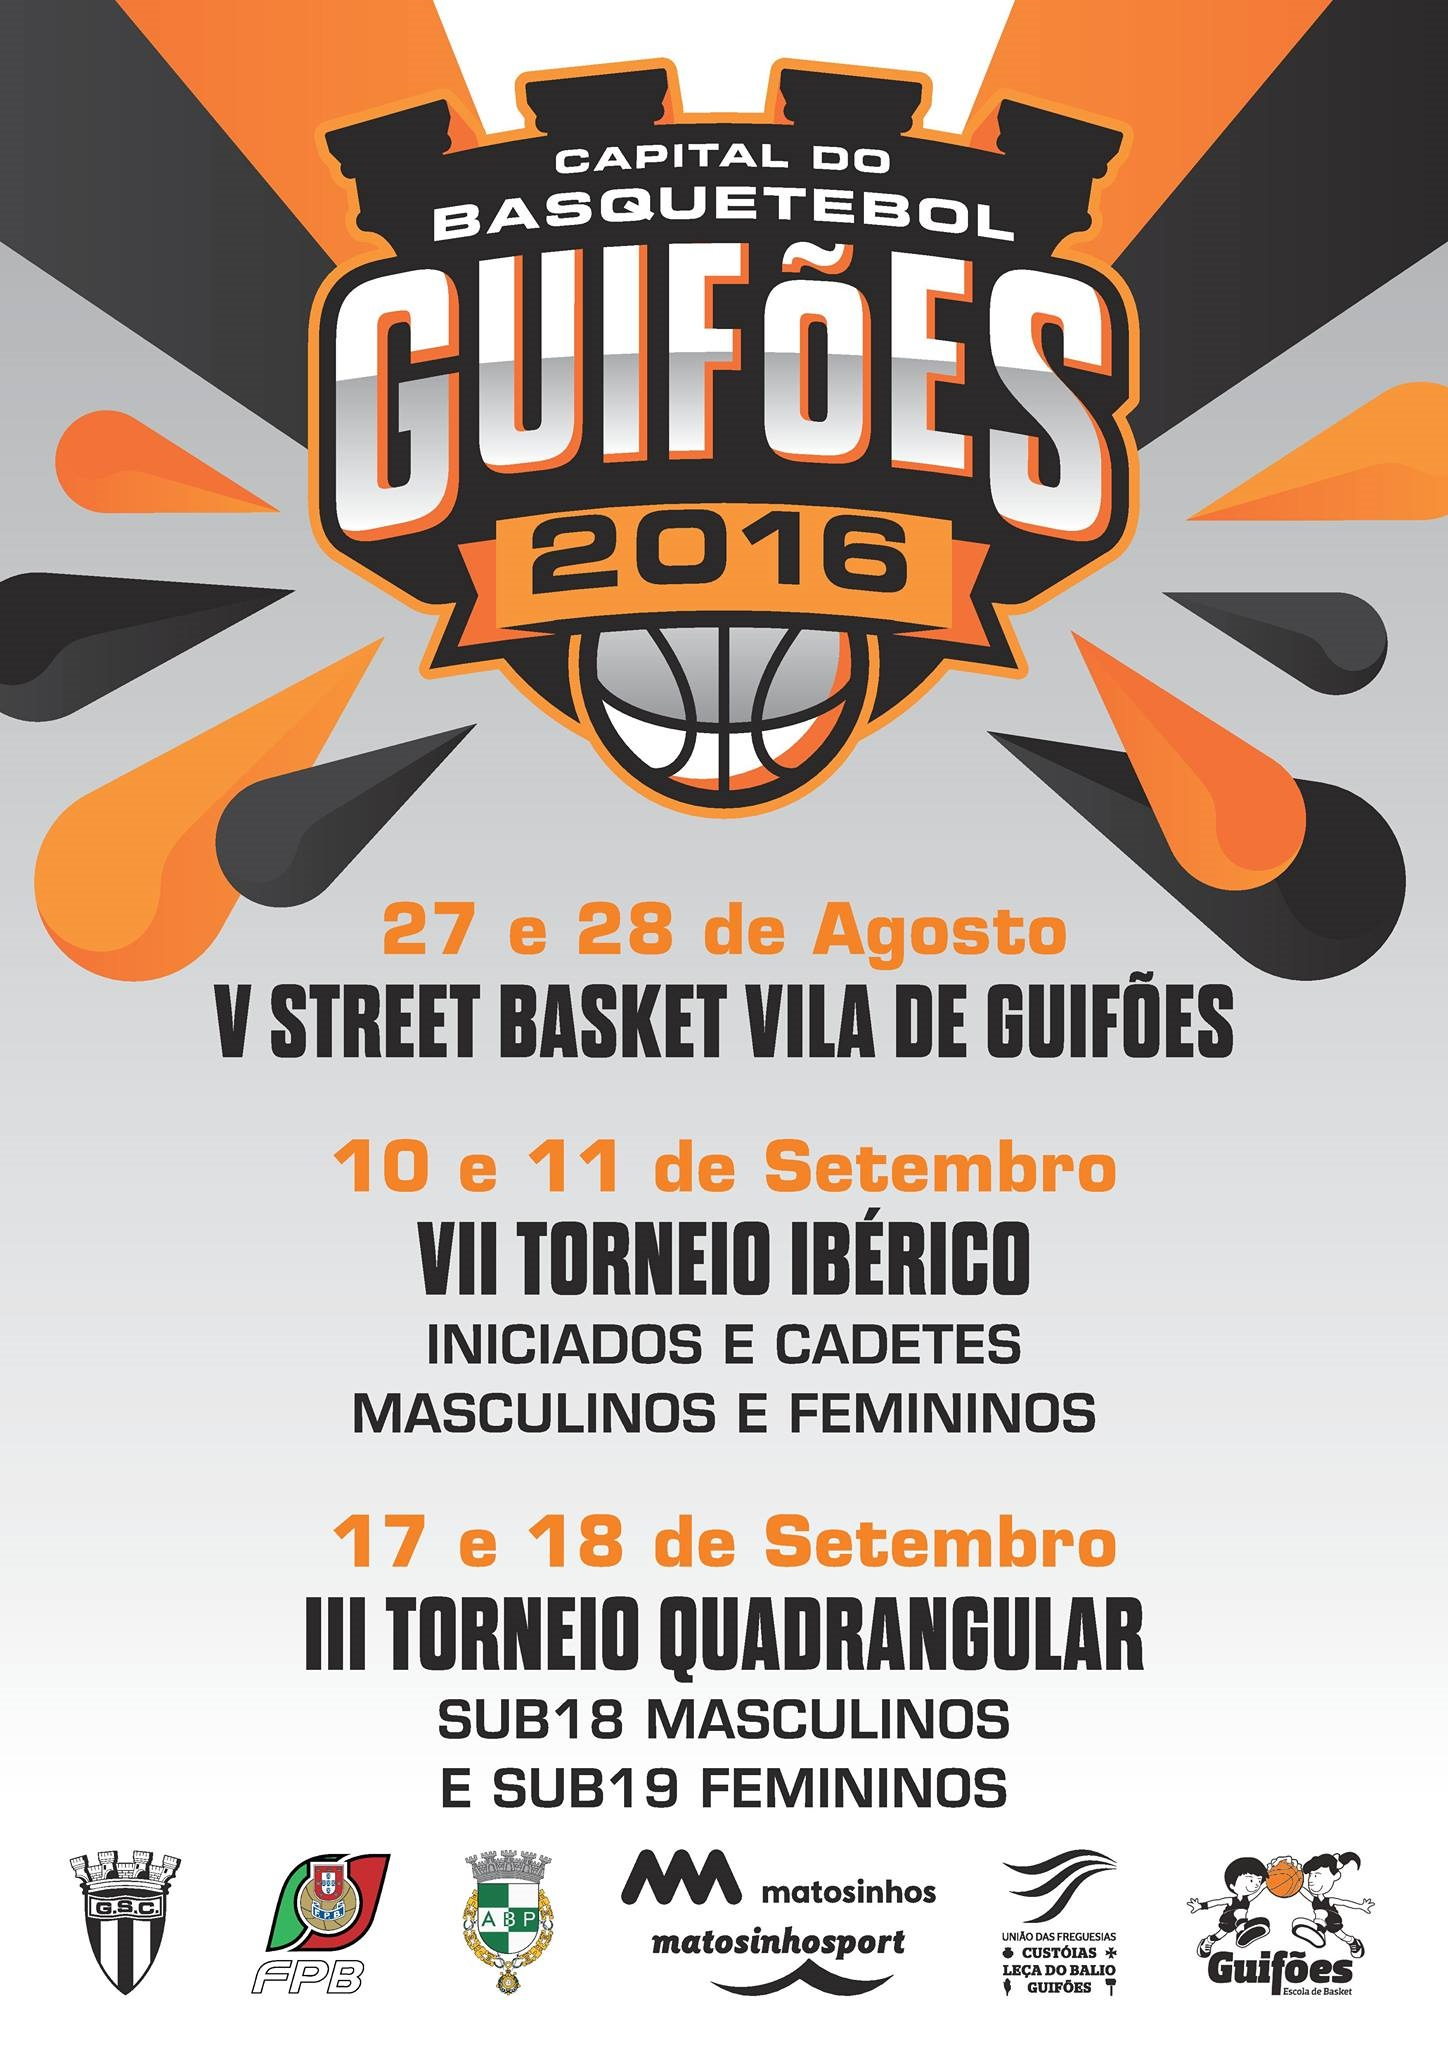 Guifões Capital do Basquetebol 2016